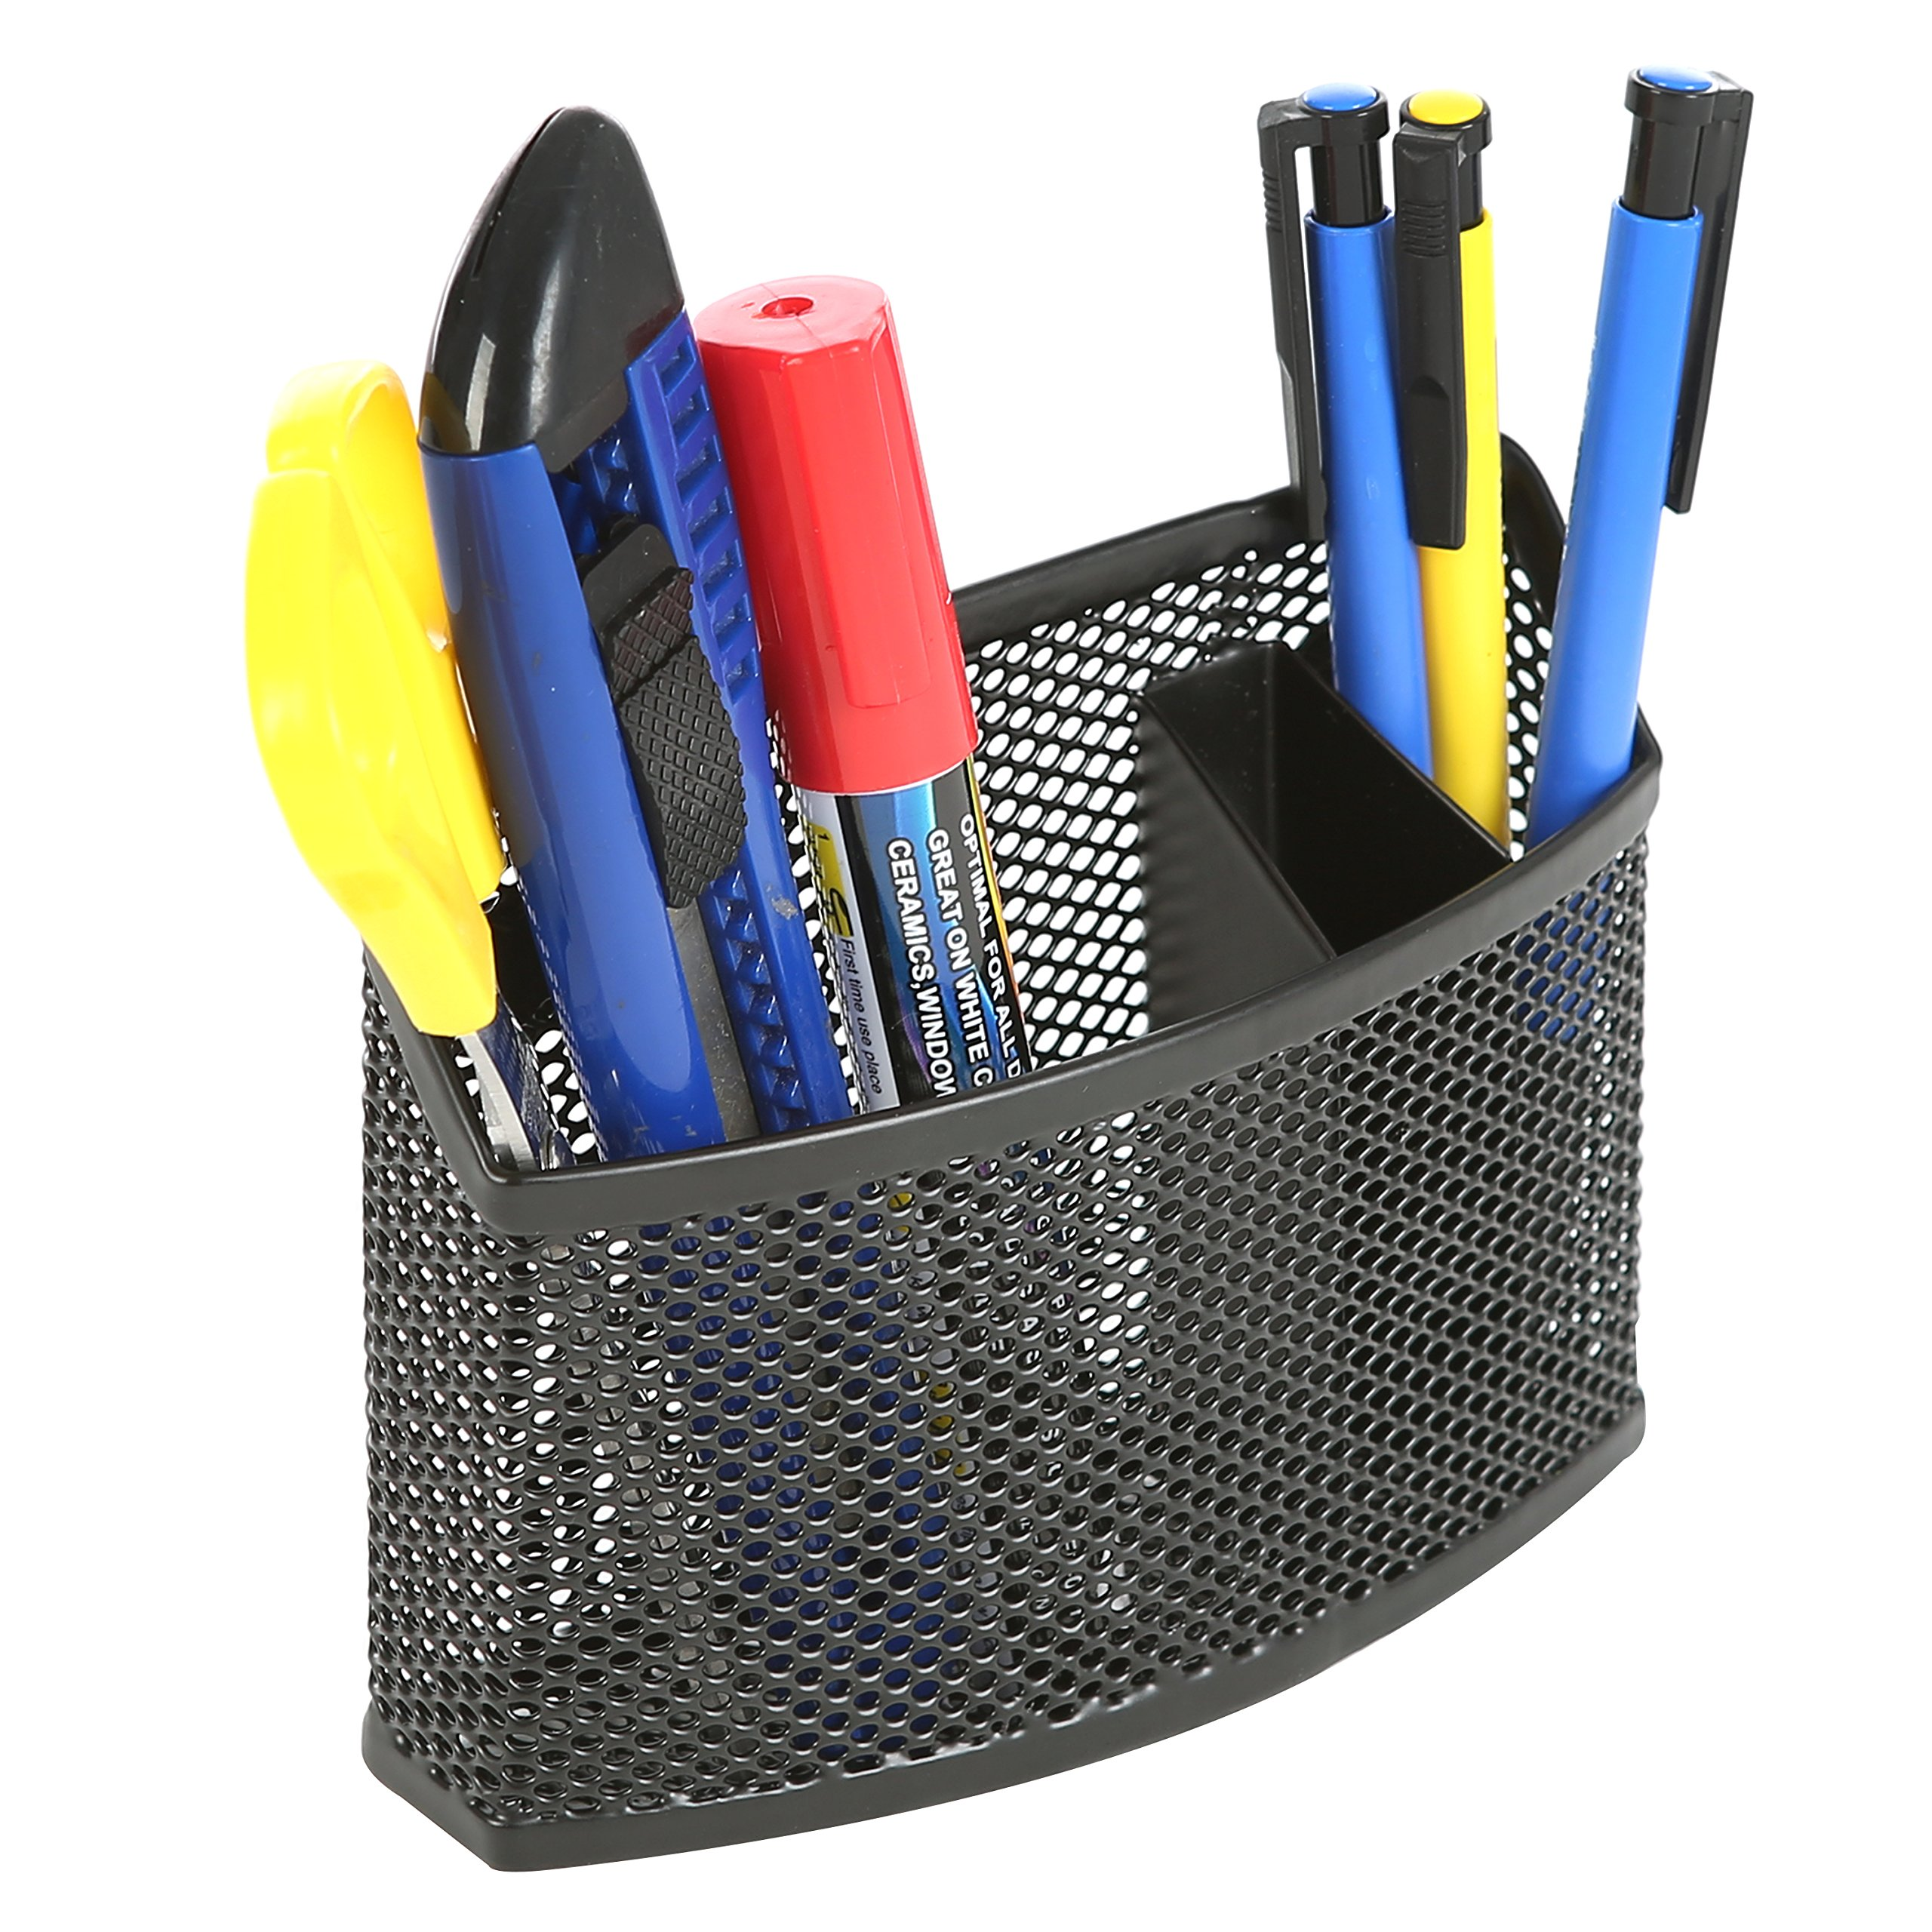 Magnetic Black Metal Mesh Curved 3 Compartment Office Supply Organizer and Storage Basket